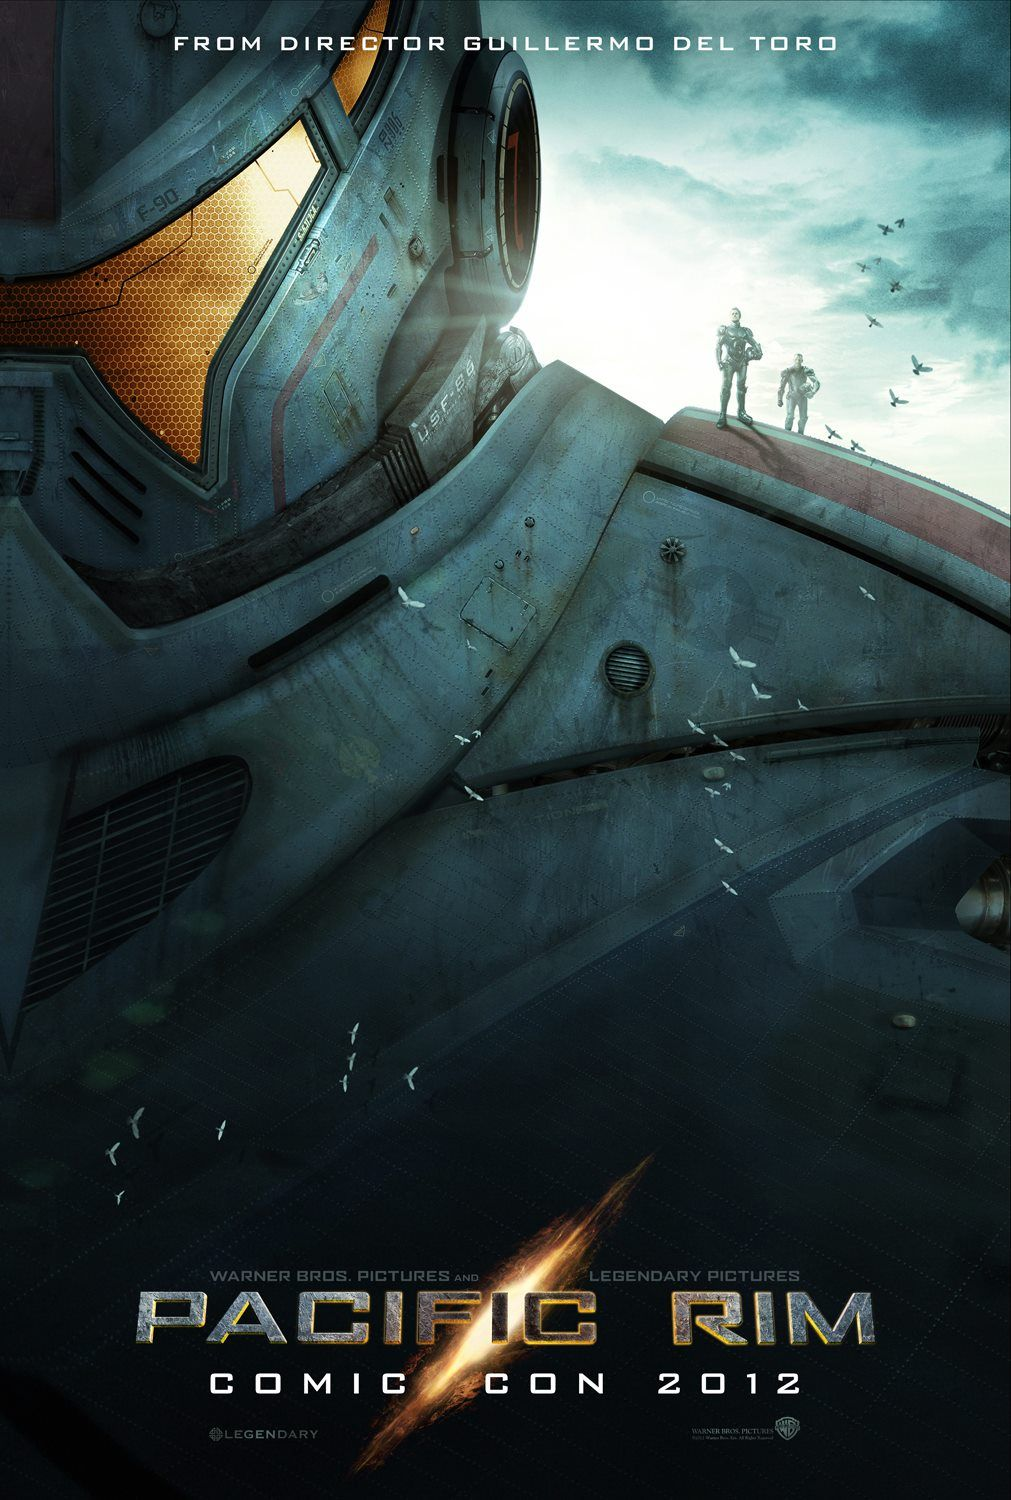 Comic-Con: Pacific Rim Brings Giant Monsters and Robots - IGN